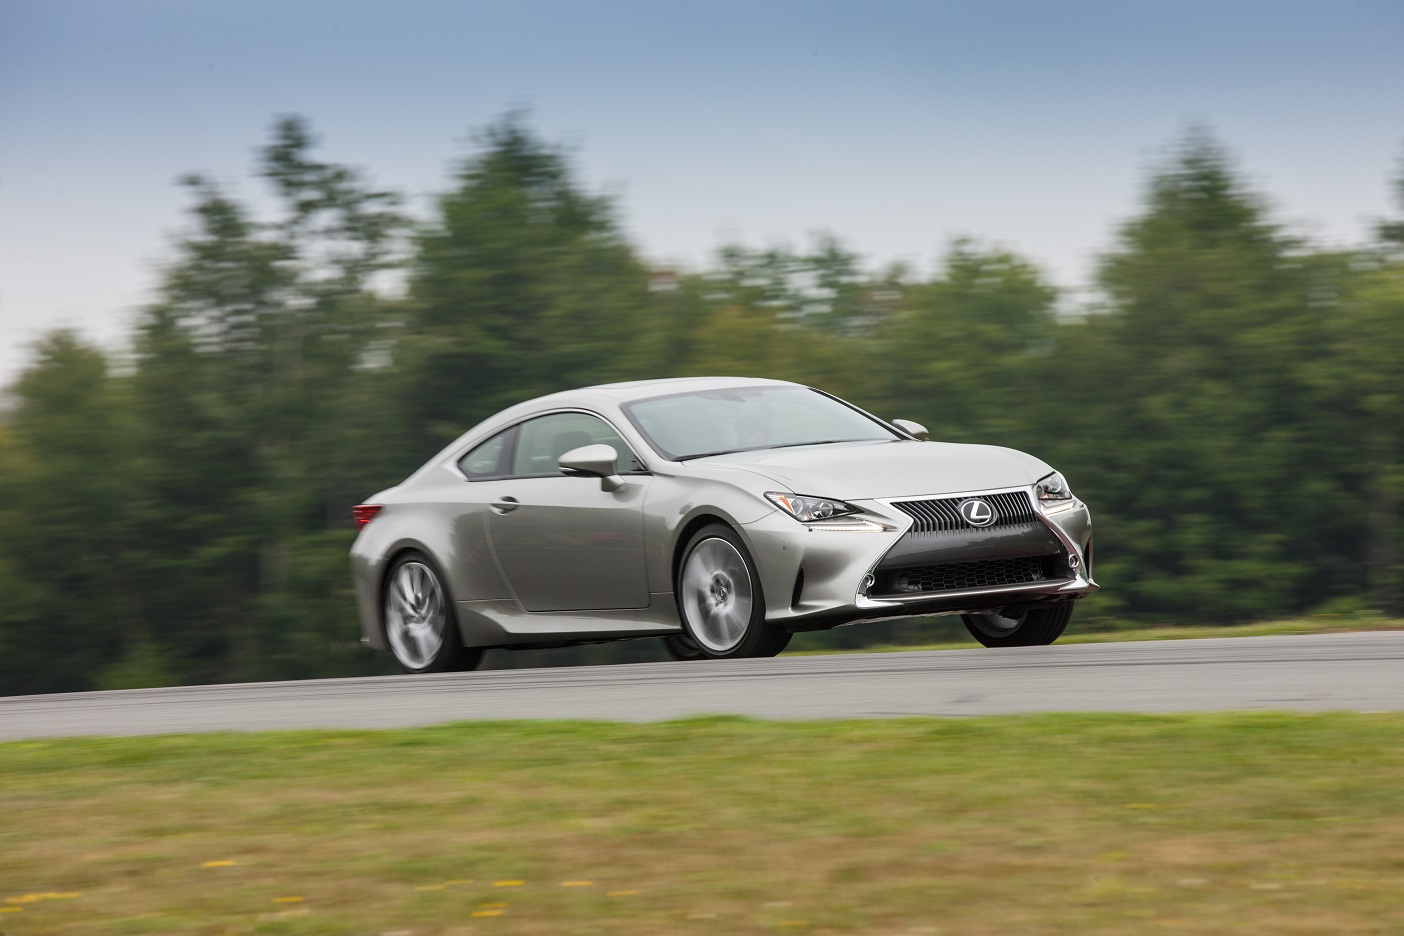 Kindle your passion: the 2017 Lexus RC series all-wheel-drive luxury coupes